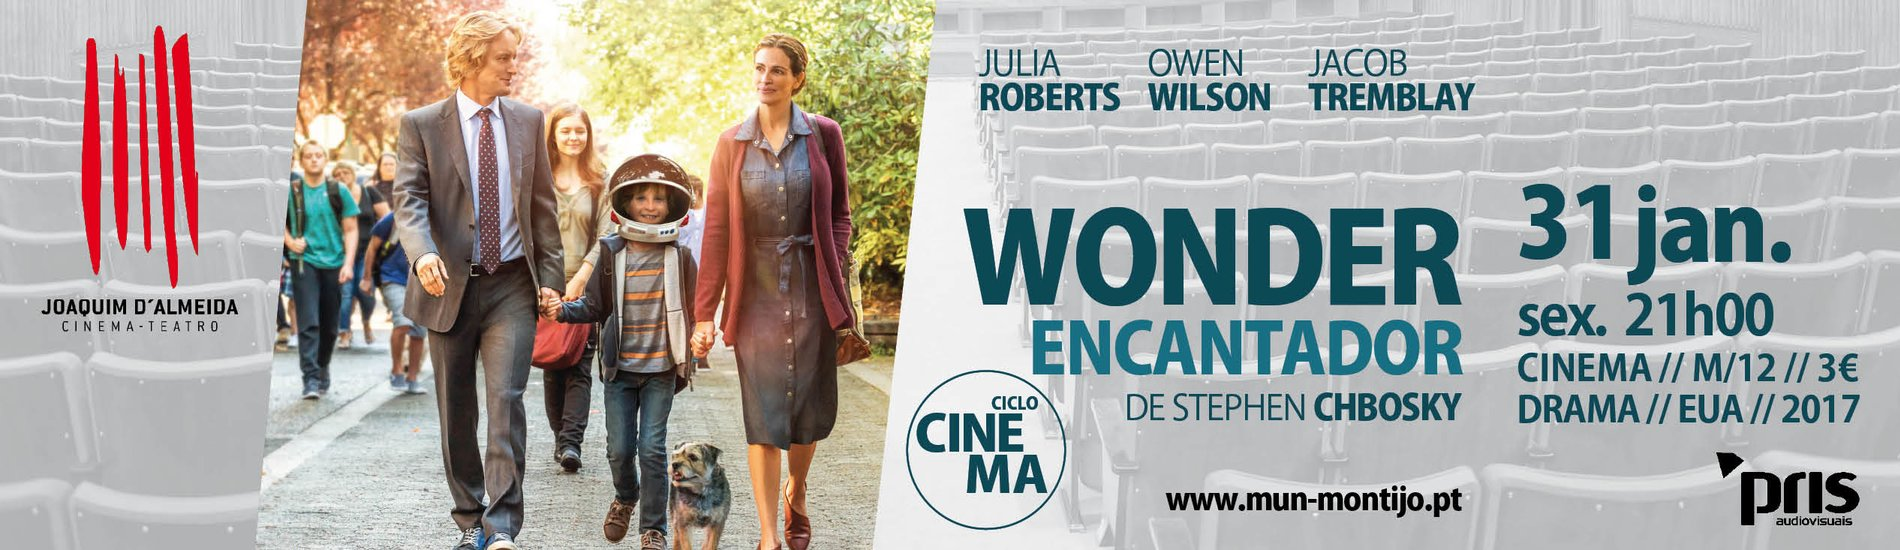 amrs_ciclo_de_cinema_wonder_ctja_2020